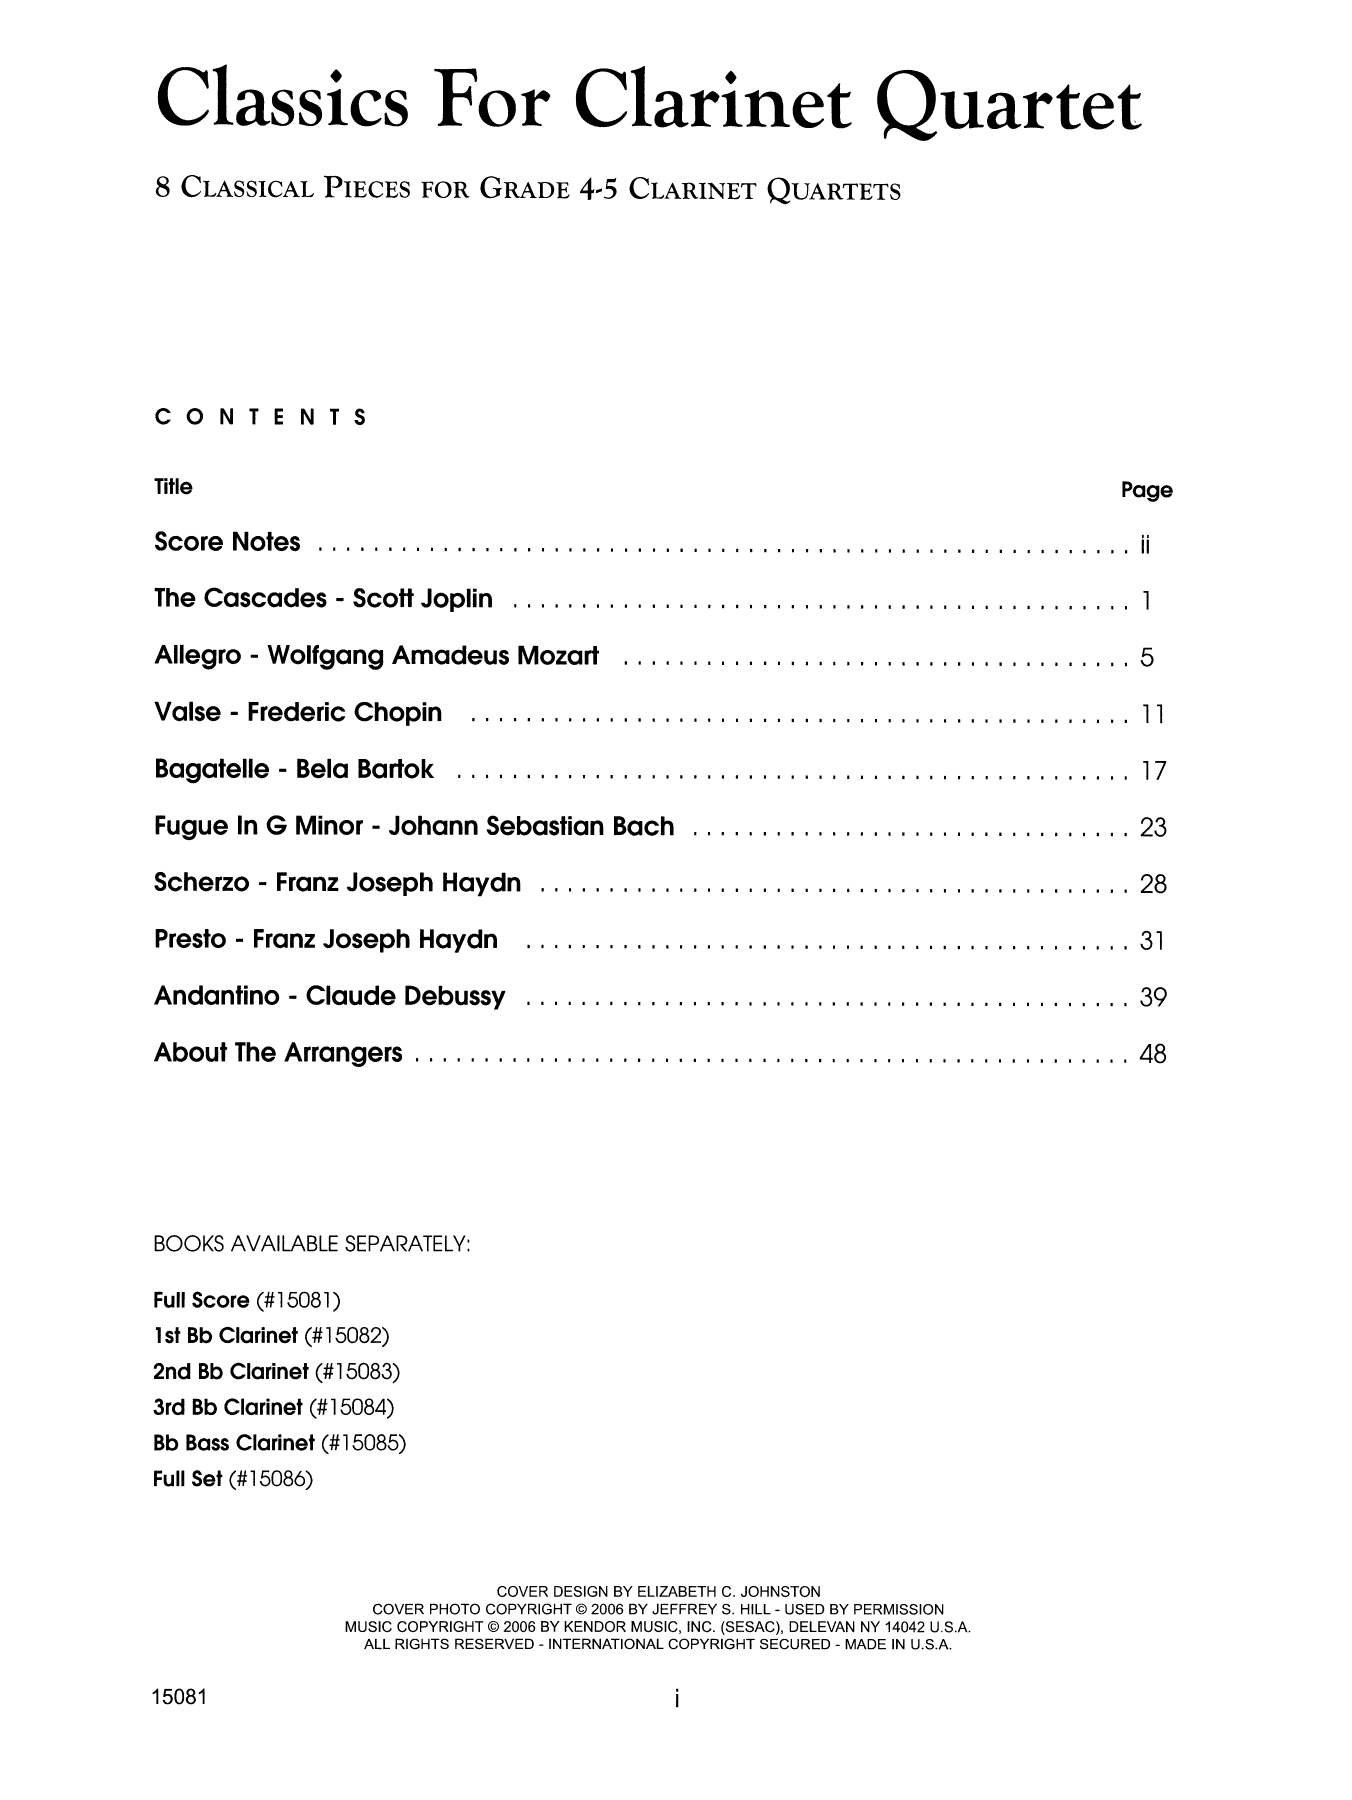 Classics For Clarinet Quartet - Full Score Sheet Music